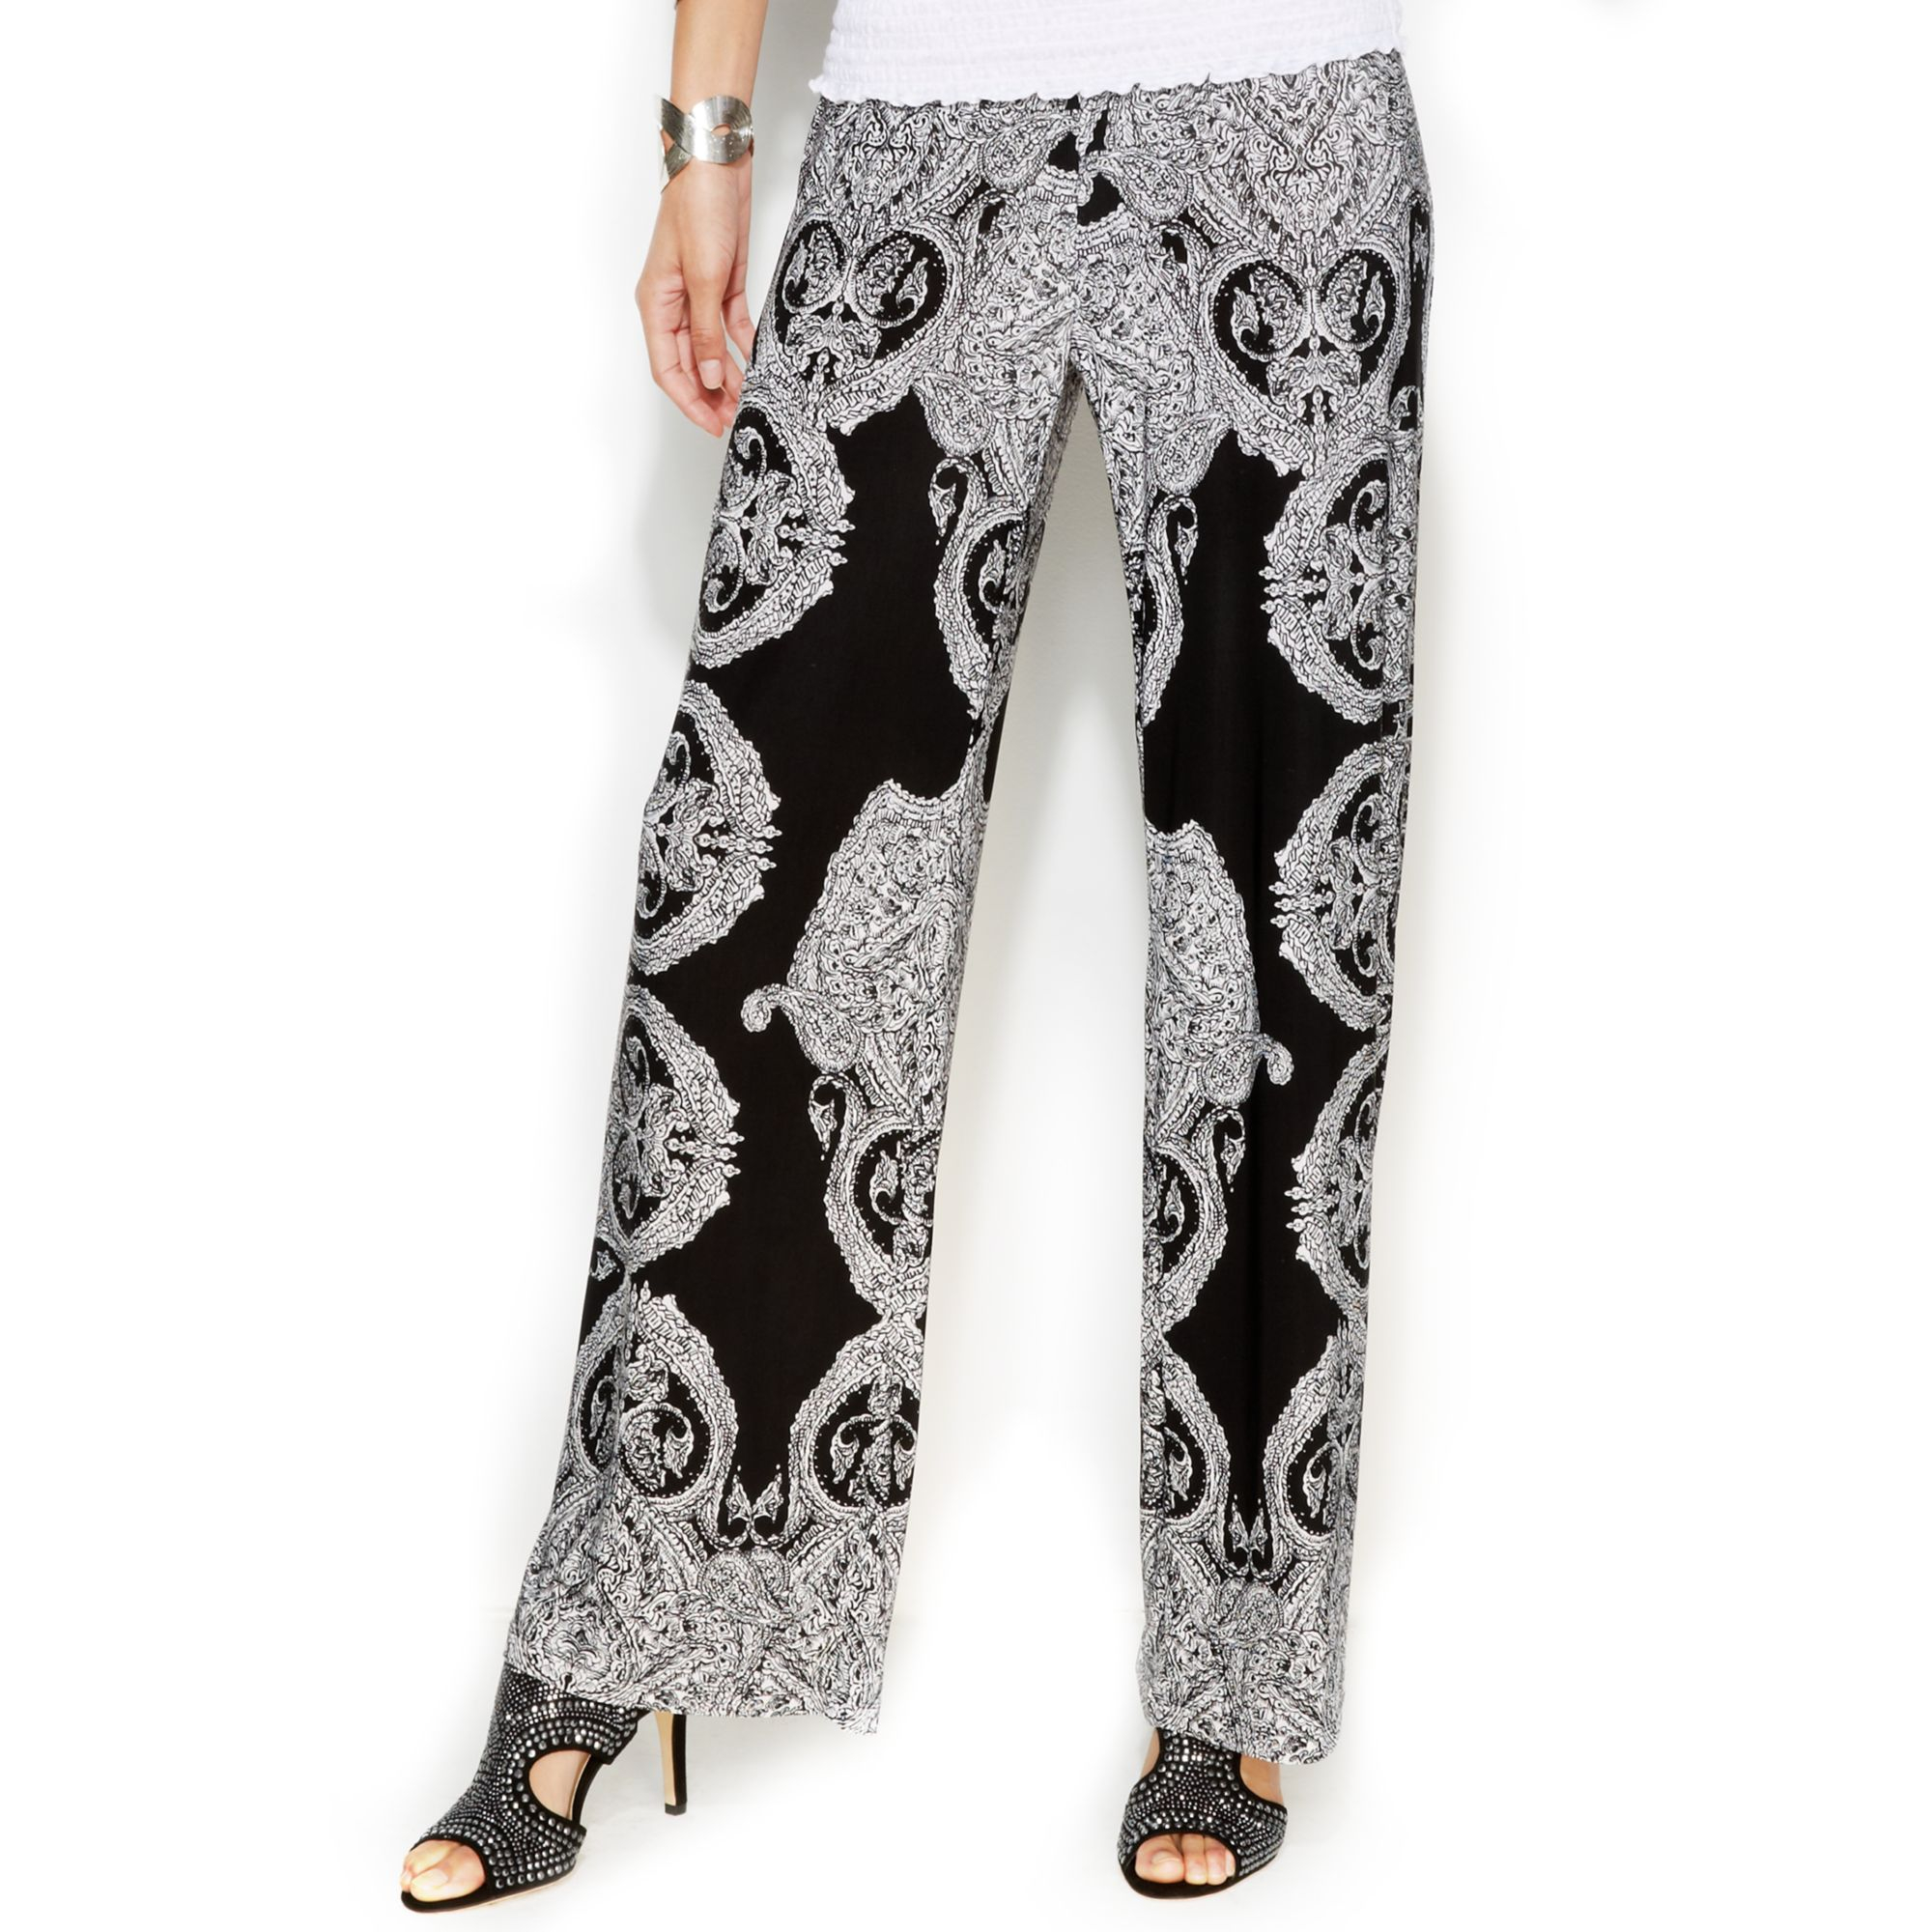 Inc international concepts Petite Printed Wideleg Soft Pants | Lyst